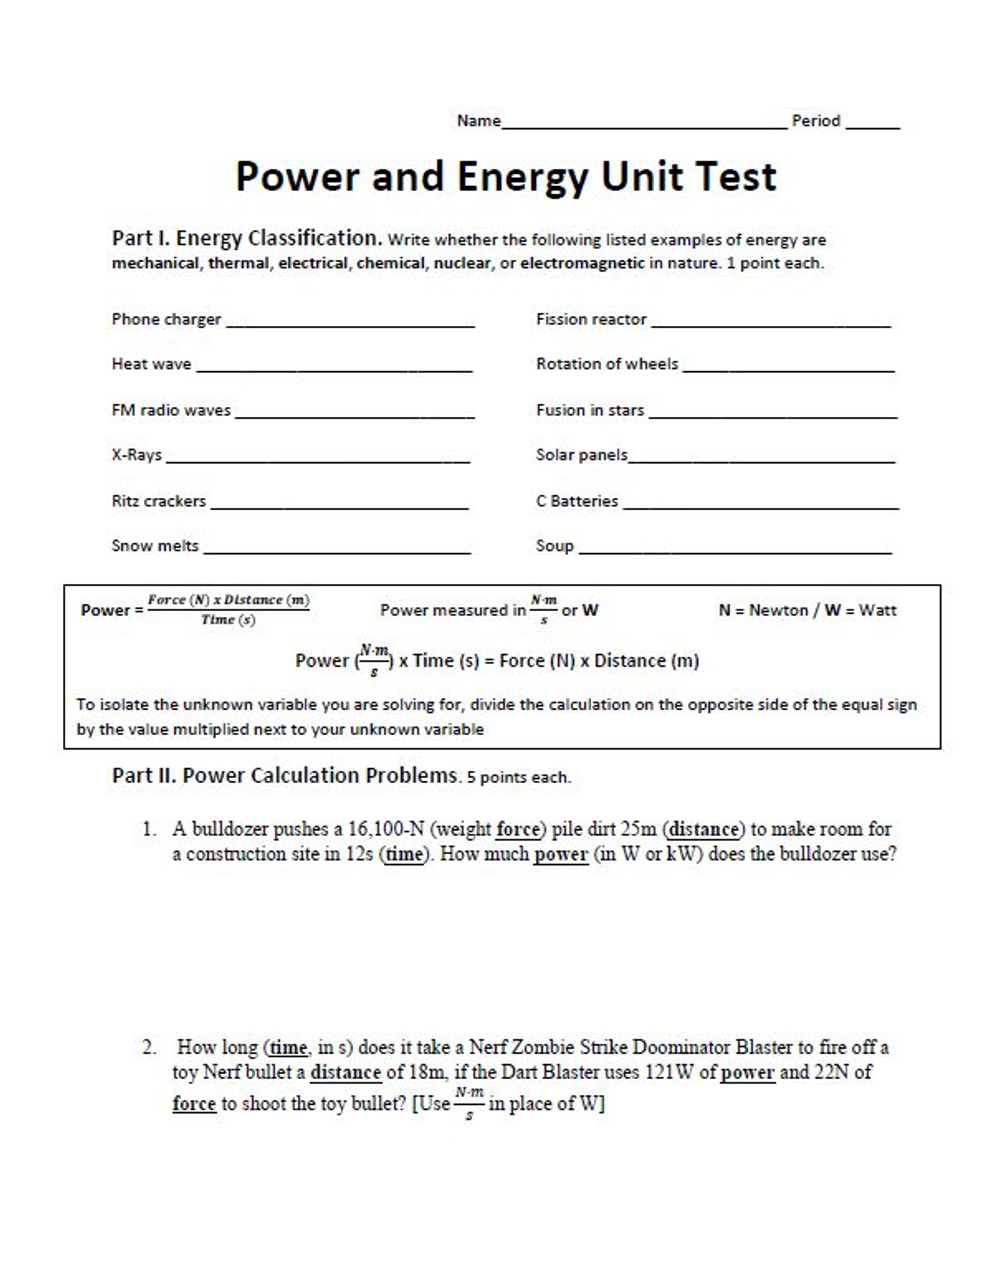 Power and Energy Unit Test (Energy Classification, Power Problems, Kinetic and Potential Energy Problems)